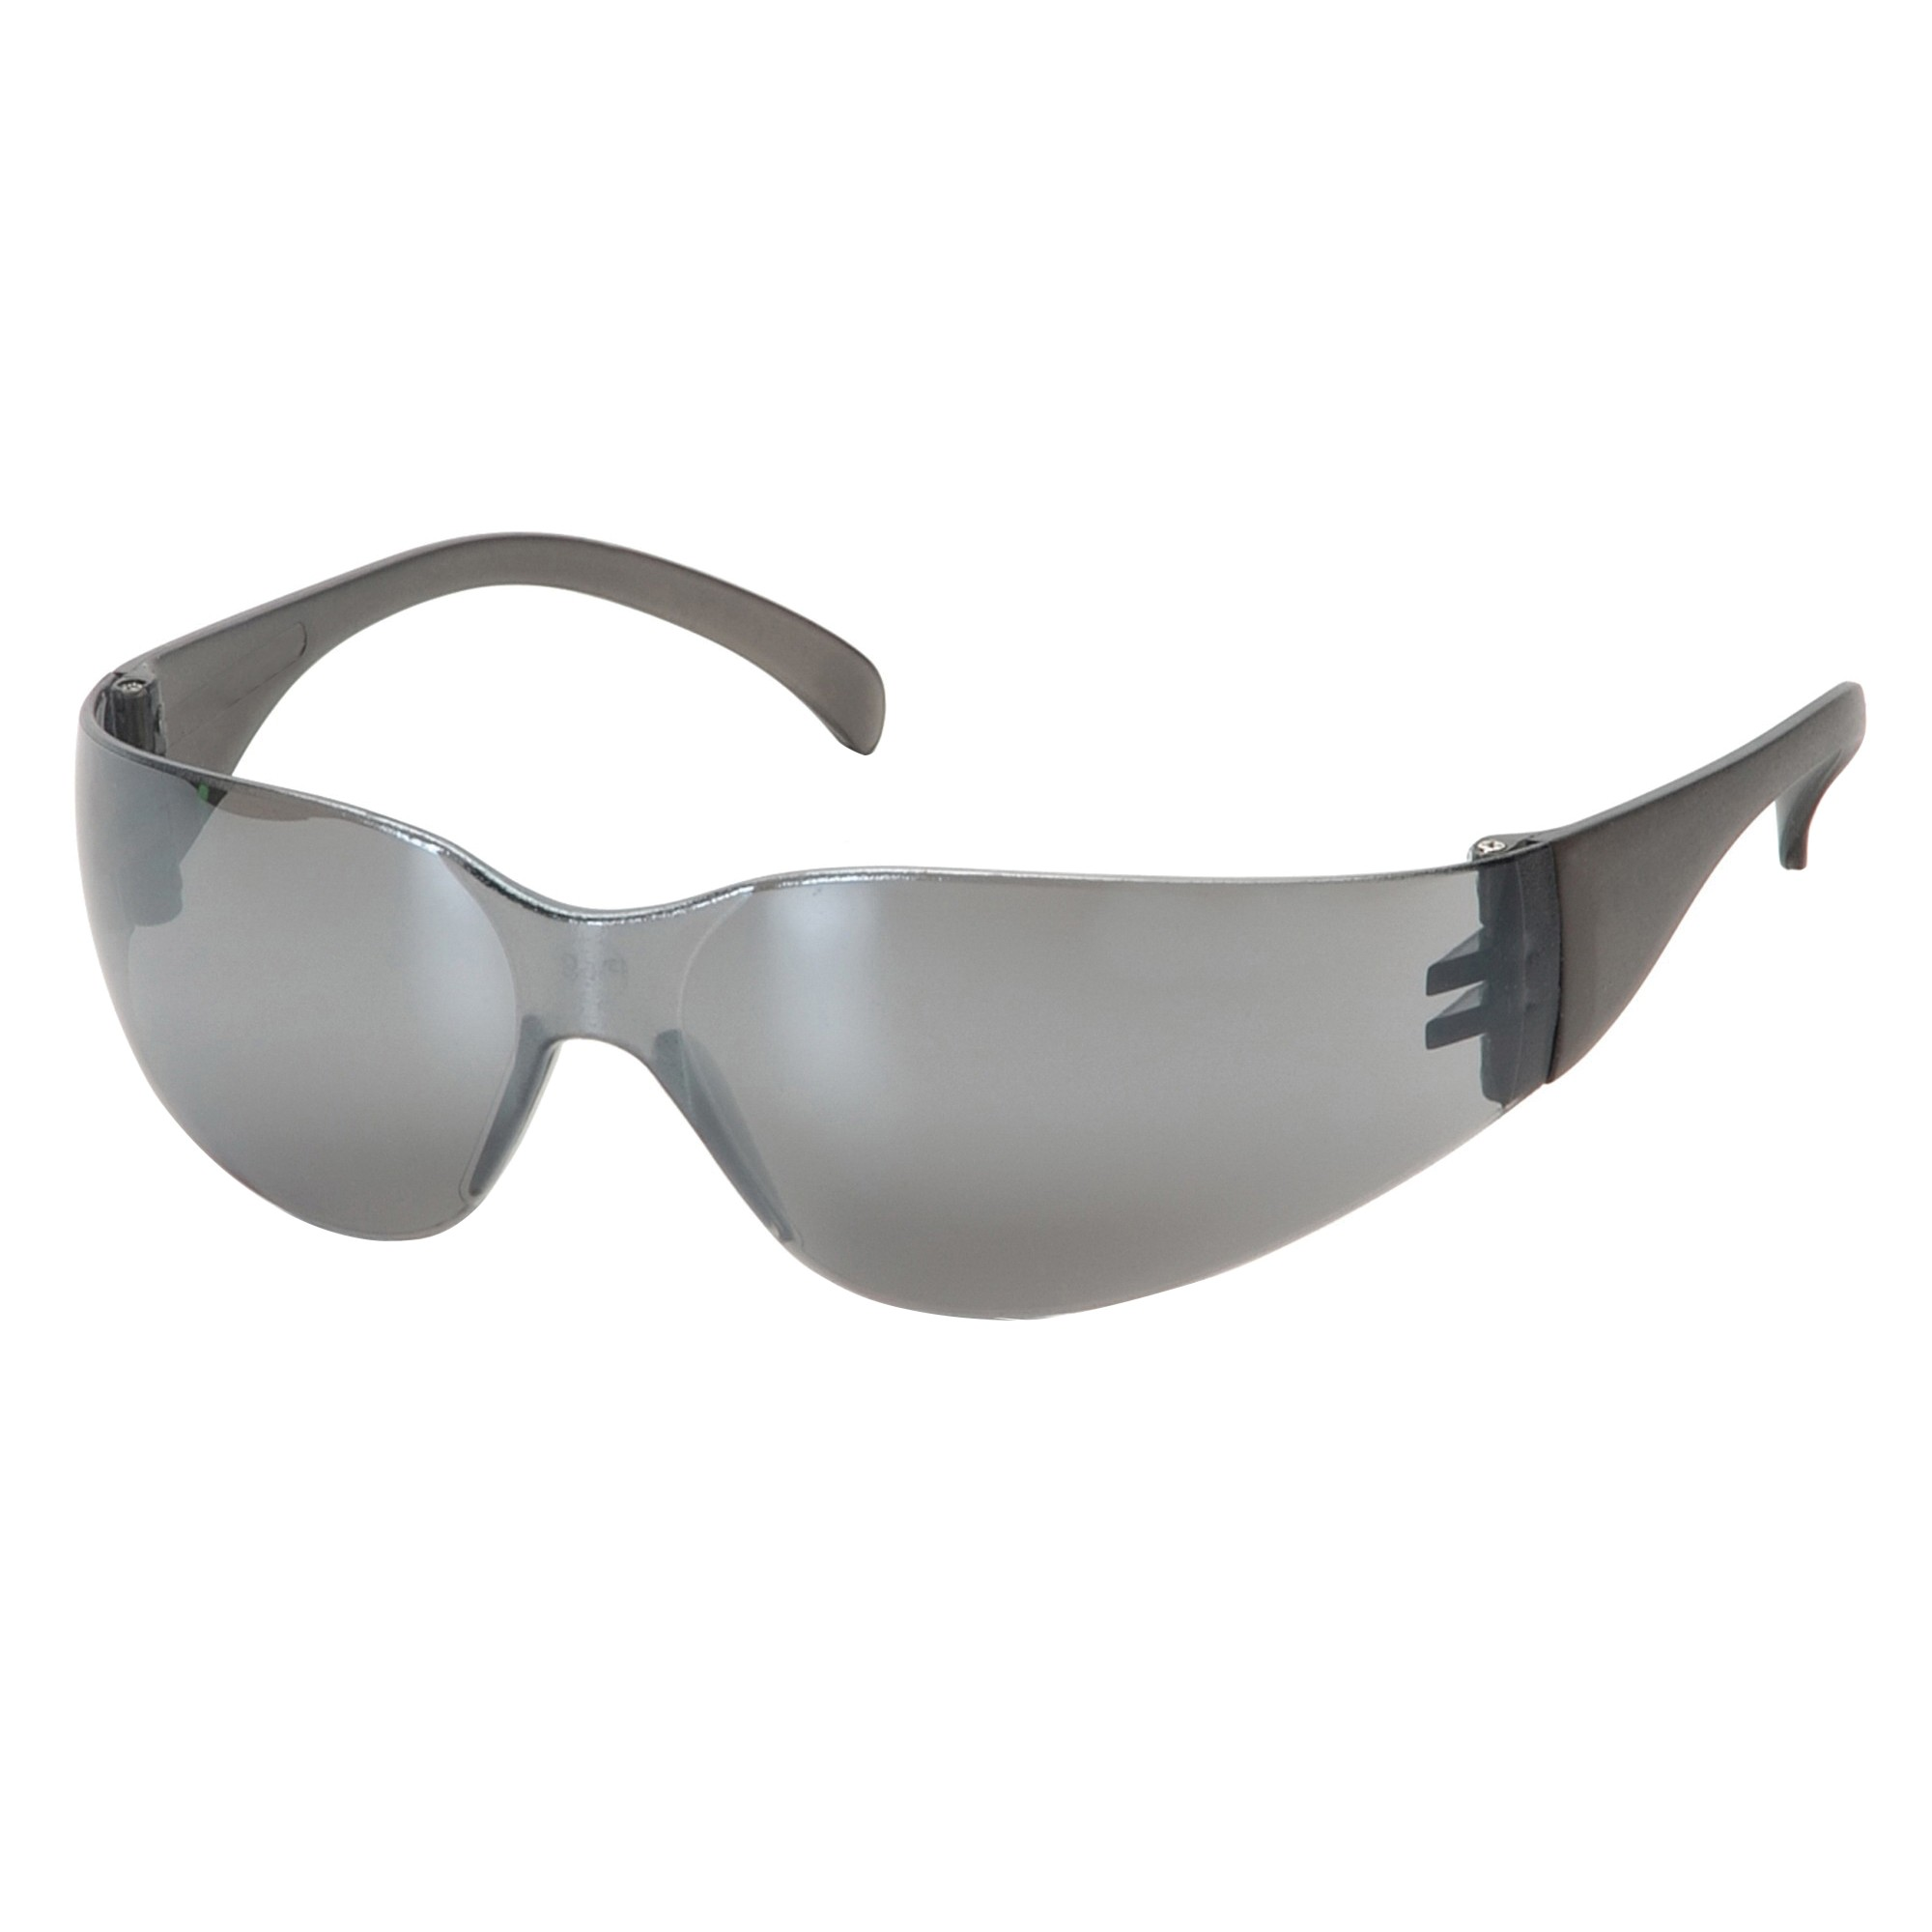 Pyramex® S4170S Light Weight Protective Glasses, Universal, Frameless, Scratch-Resistant Silver Mirror Lens